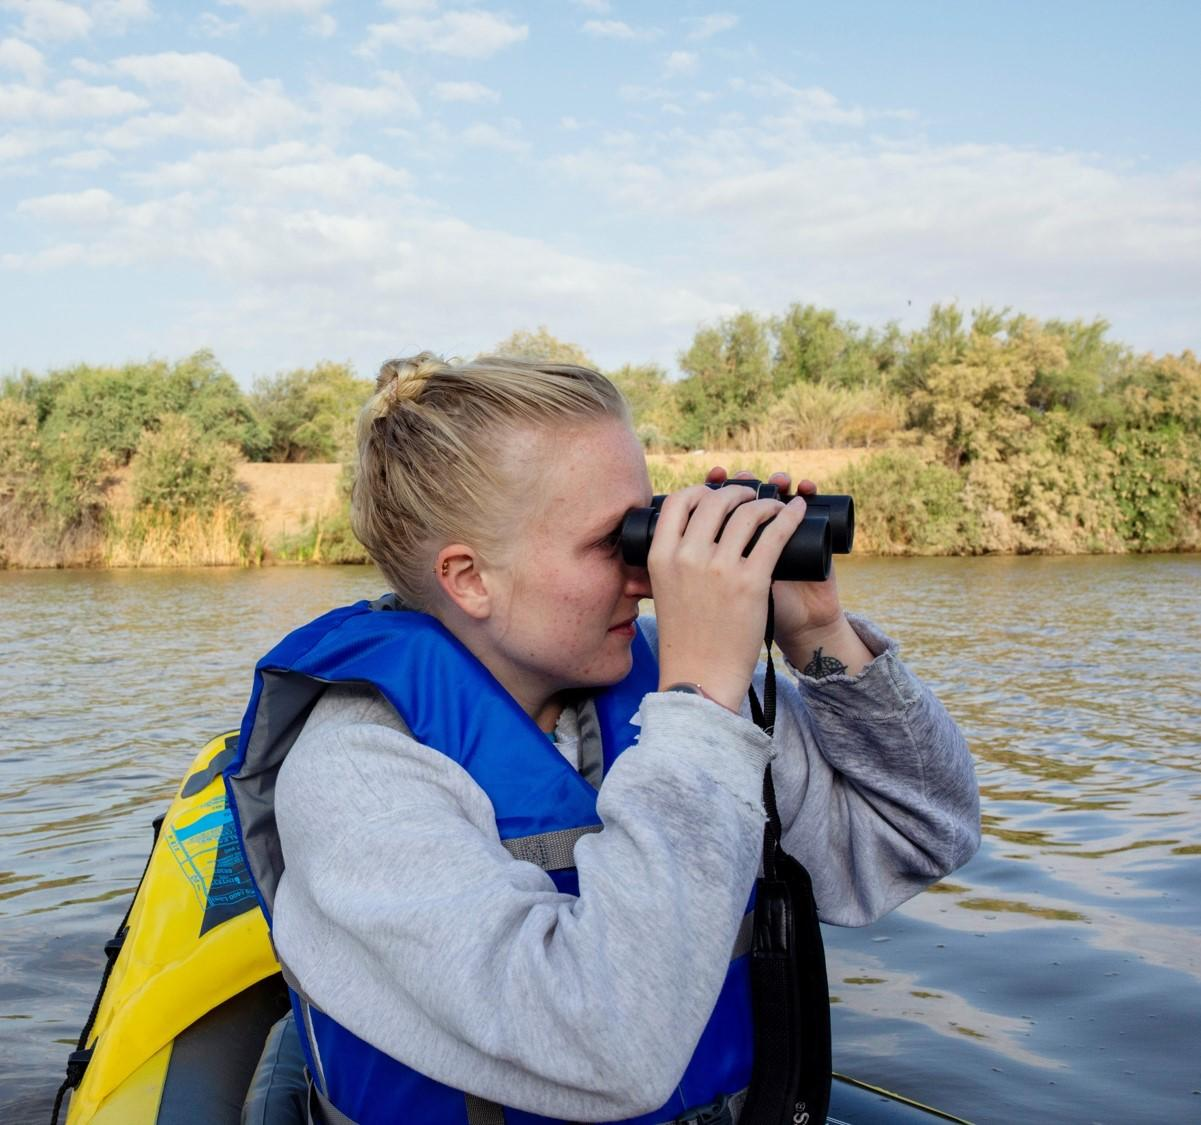 Emma Laurens scopes out a bird with her binoculars in a kayak while surveying for marsh birds on the Gillespie Dam.